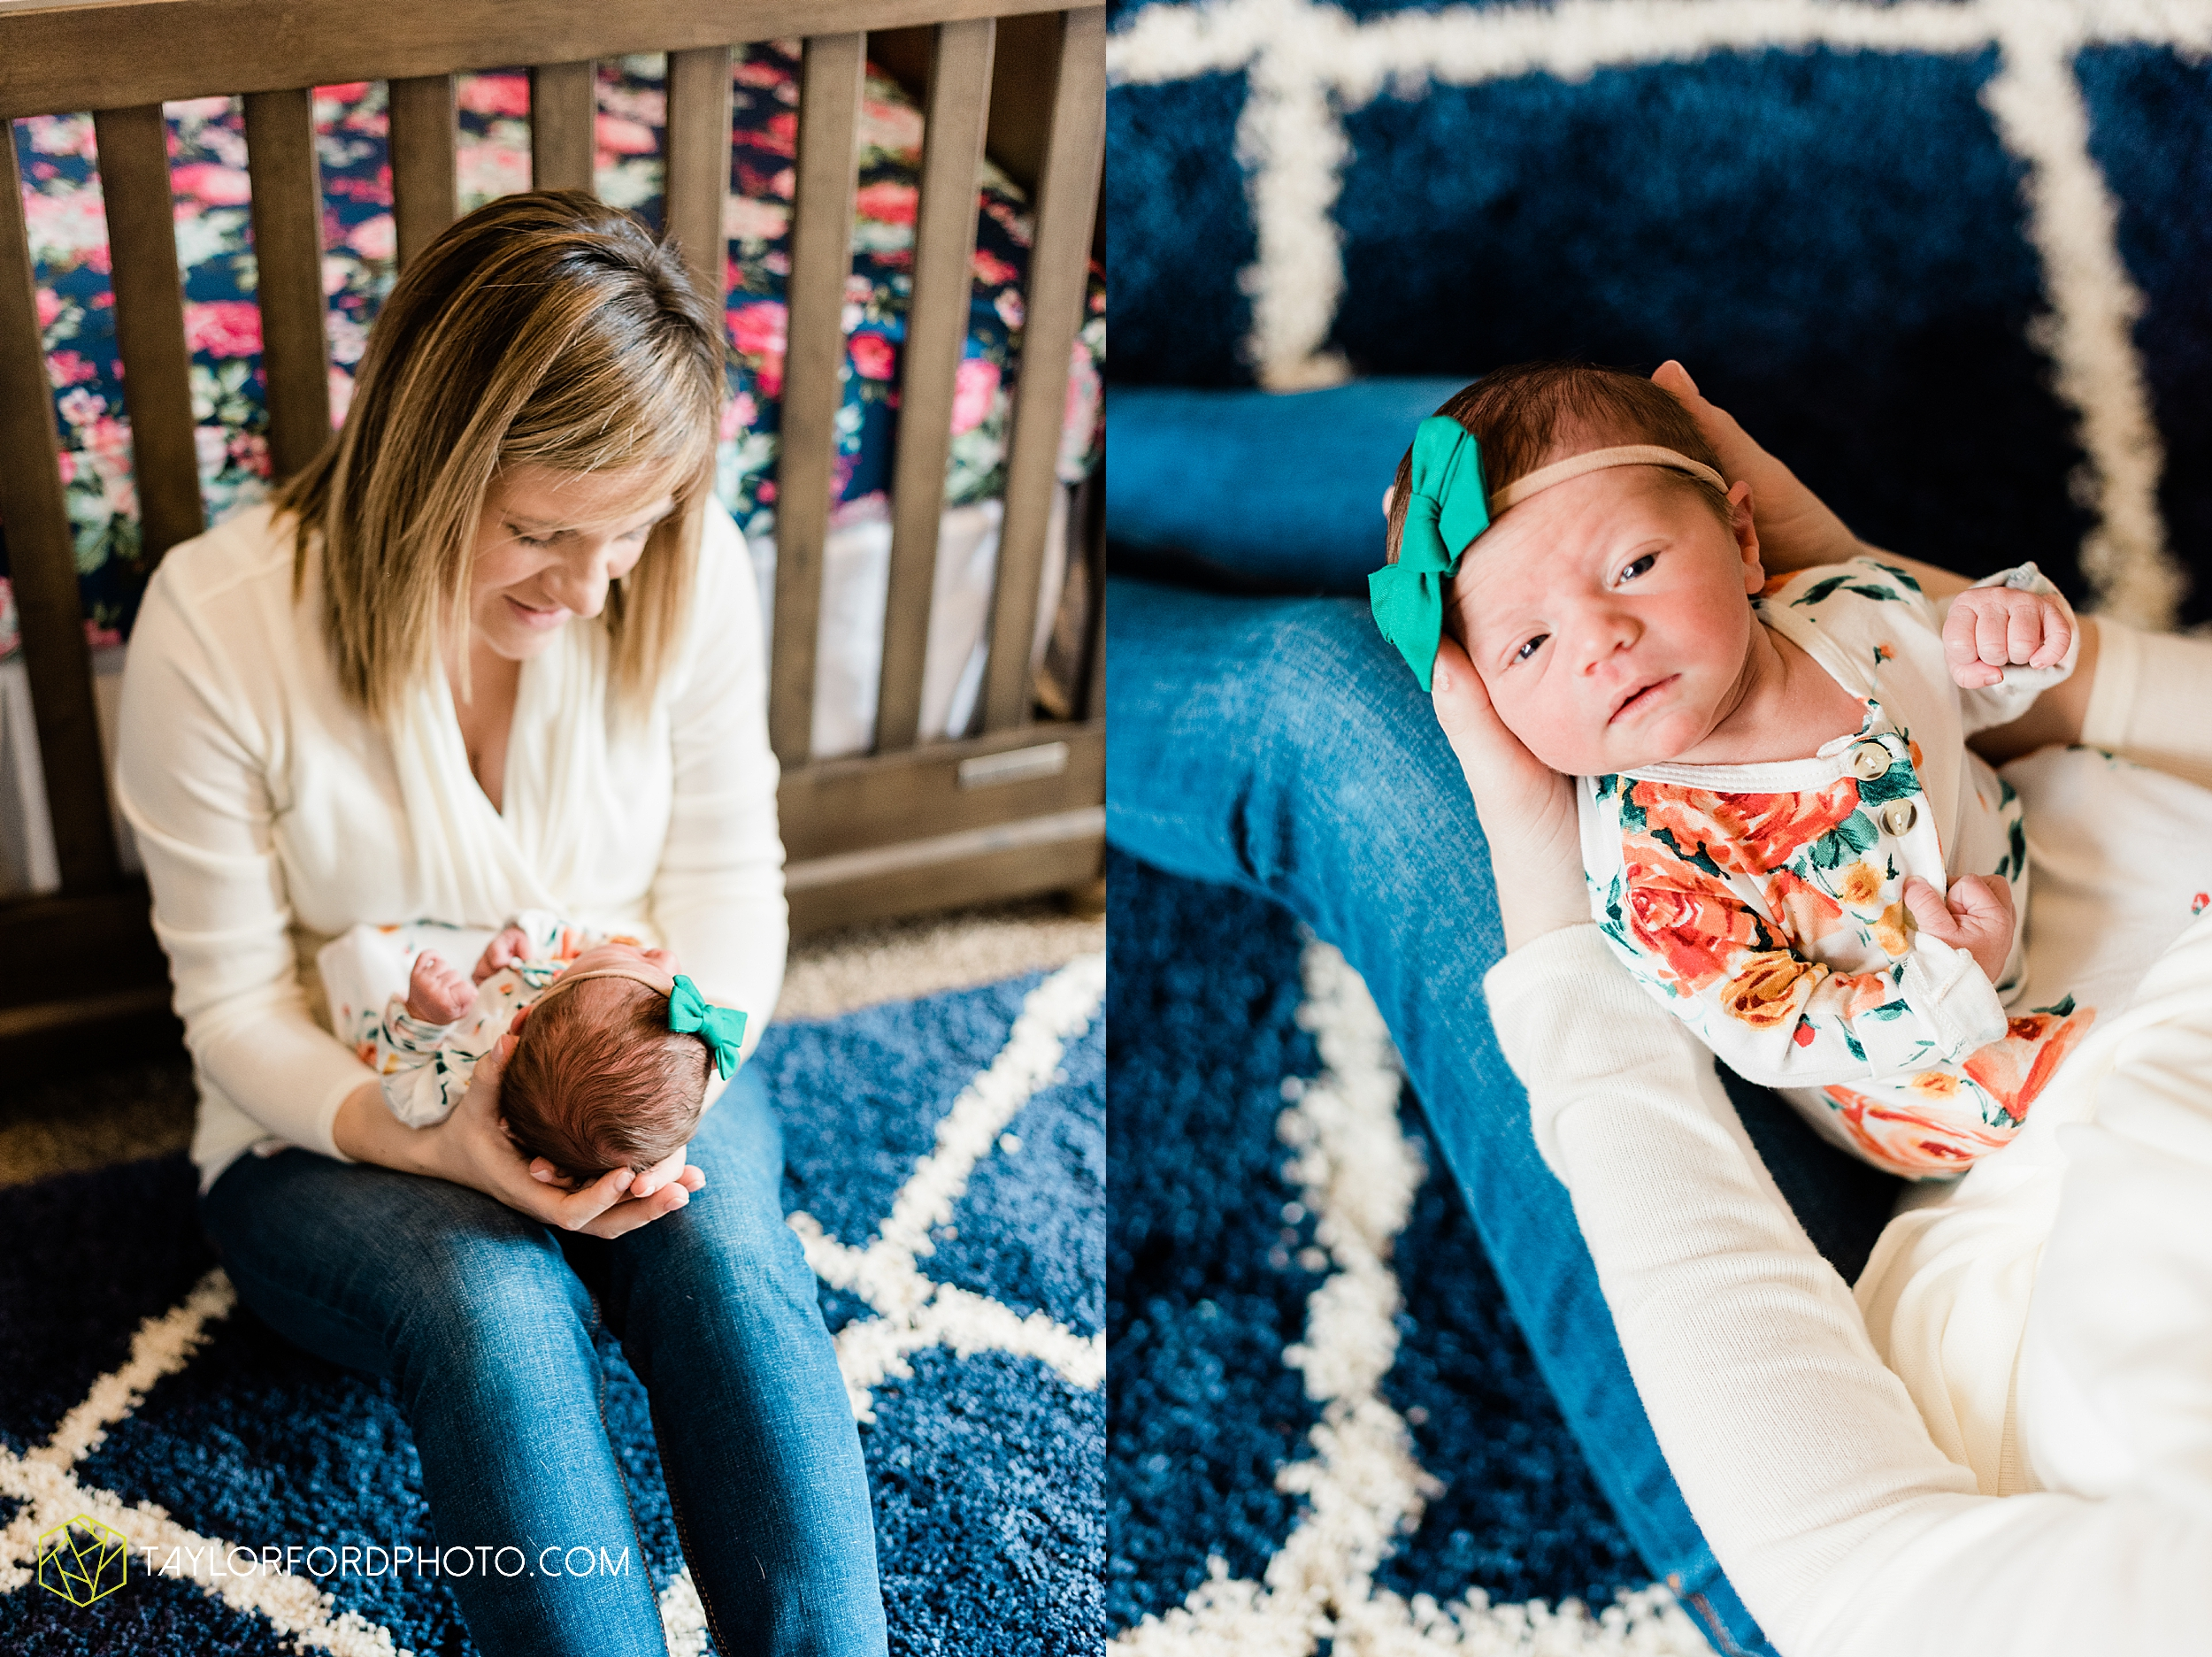 ashley-aaron-noraa-lifestyle-at-home-family-newborn-blacklick-columbus-ohio-photography-taylor-ford-hirschy-photographer_2333.jpg